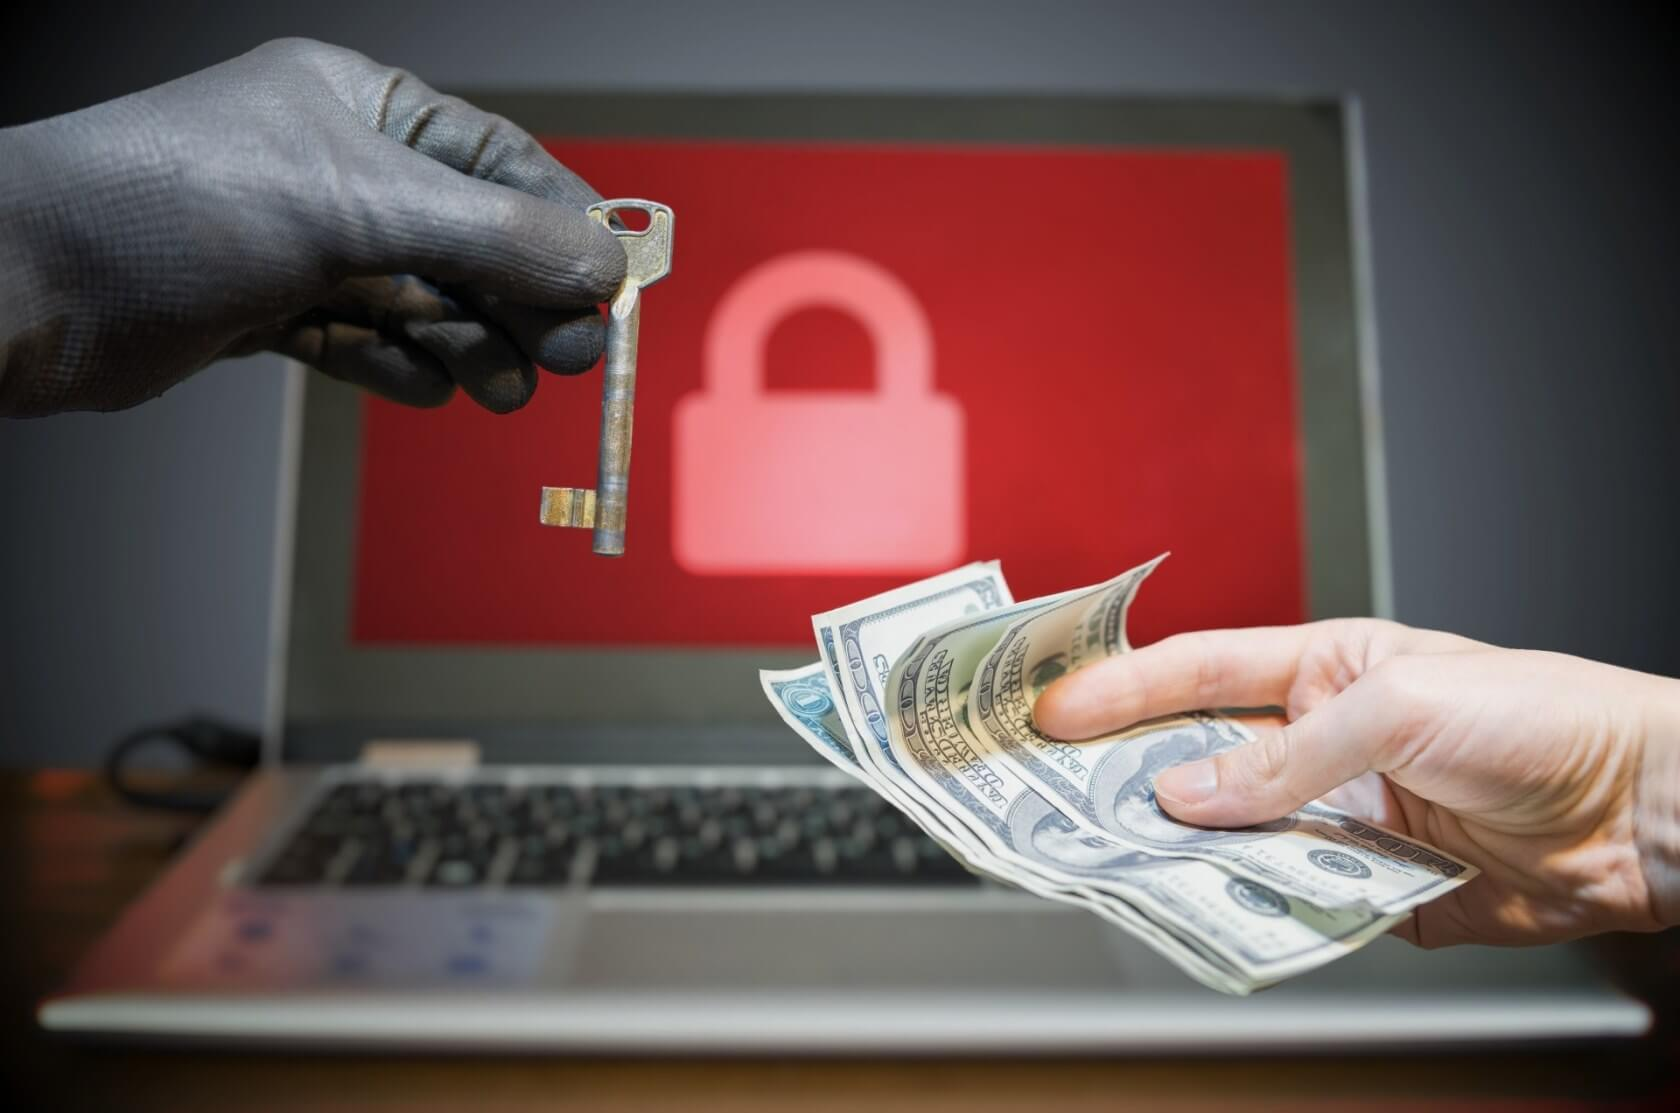 NAS vendor QNAP warns its customers about 'eCh0raix' ransomware